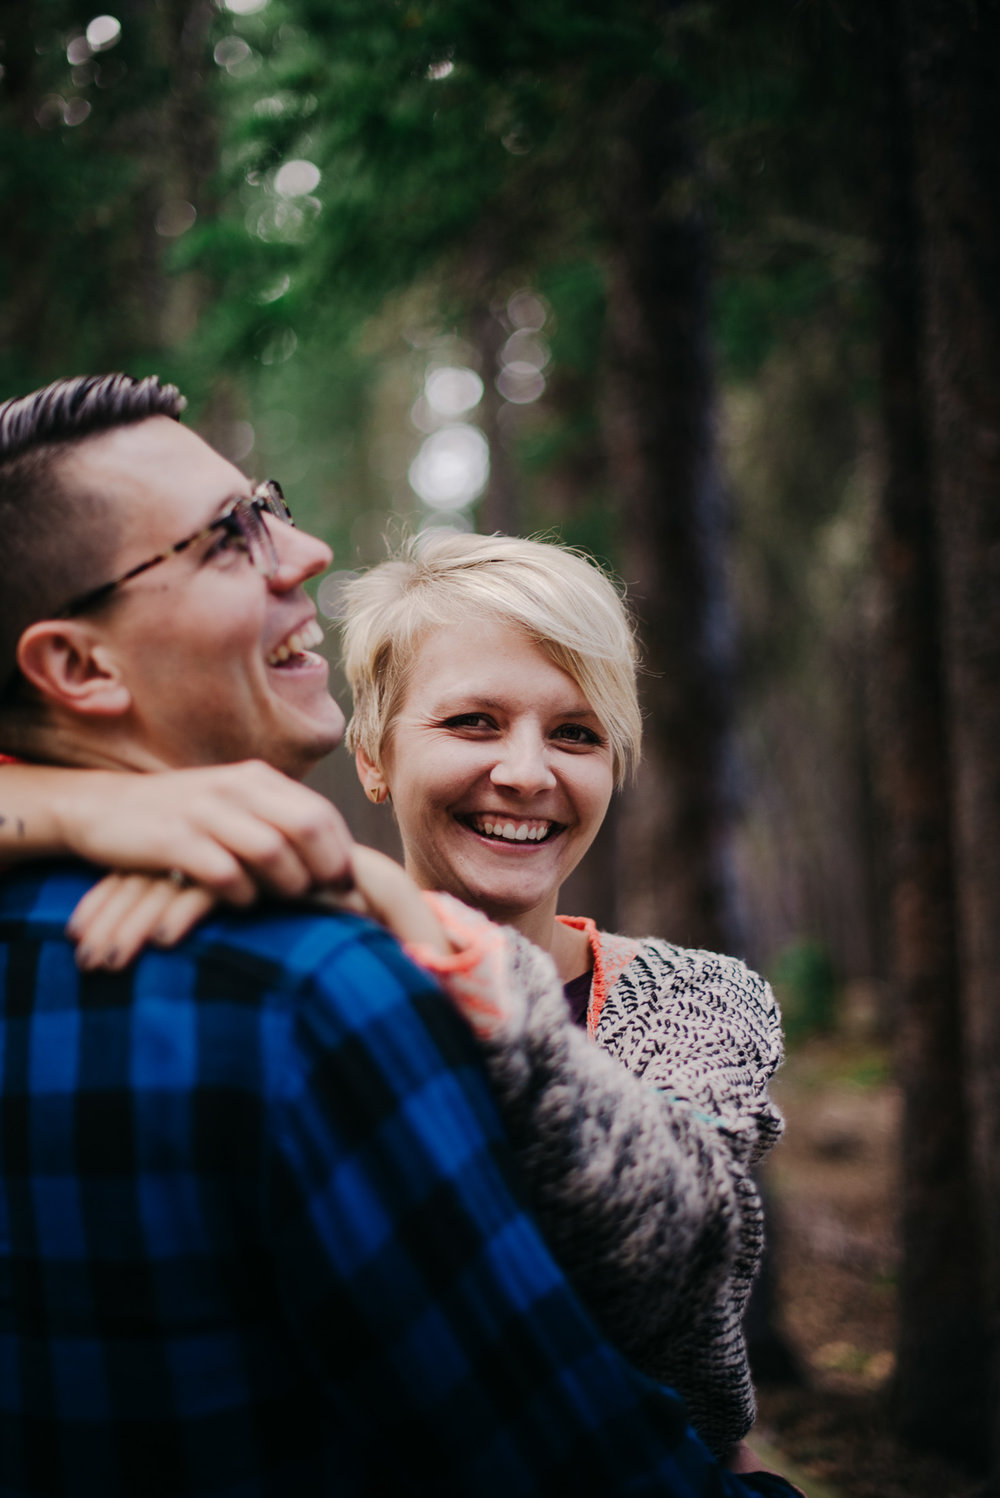 32-25couple-anniversary-engagement-photographer-colorado-Jeremy&Lindsay-Tosh-August2017-0047.jpg